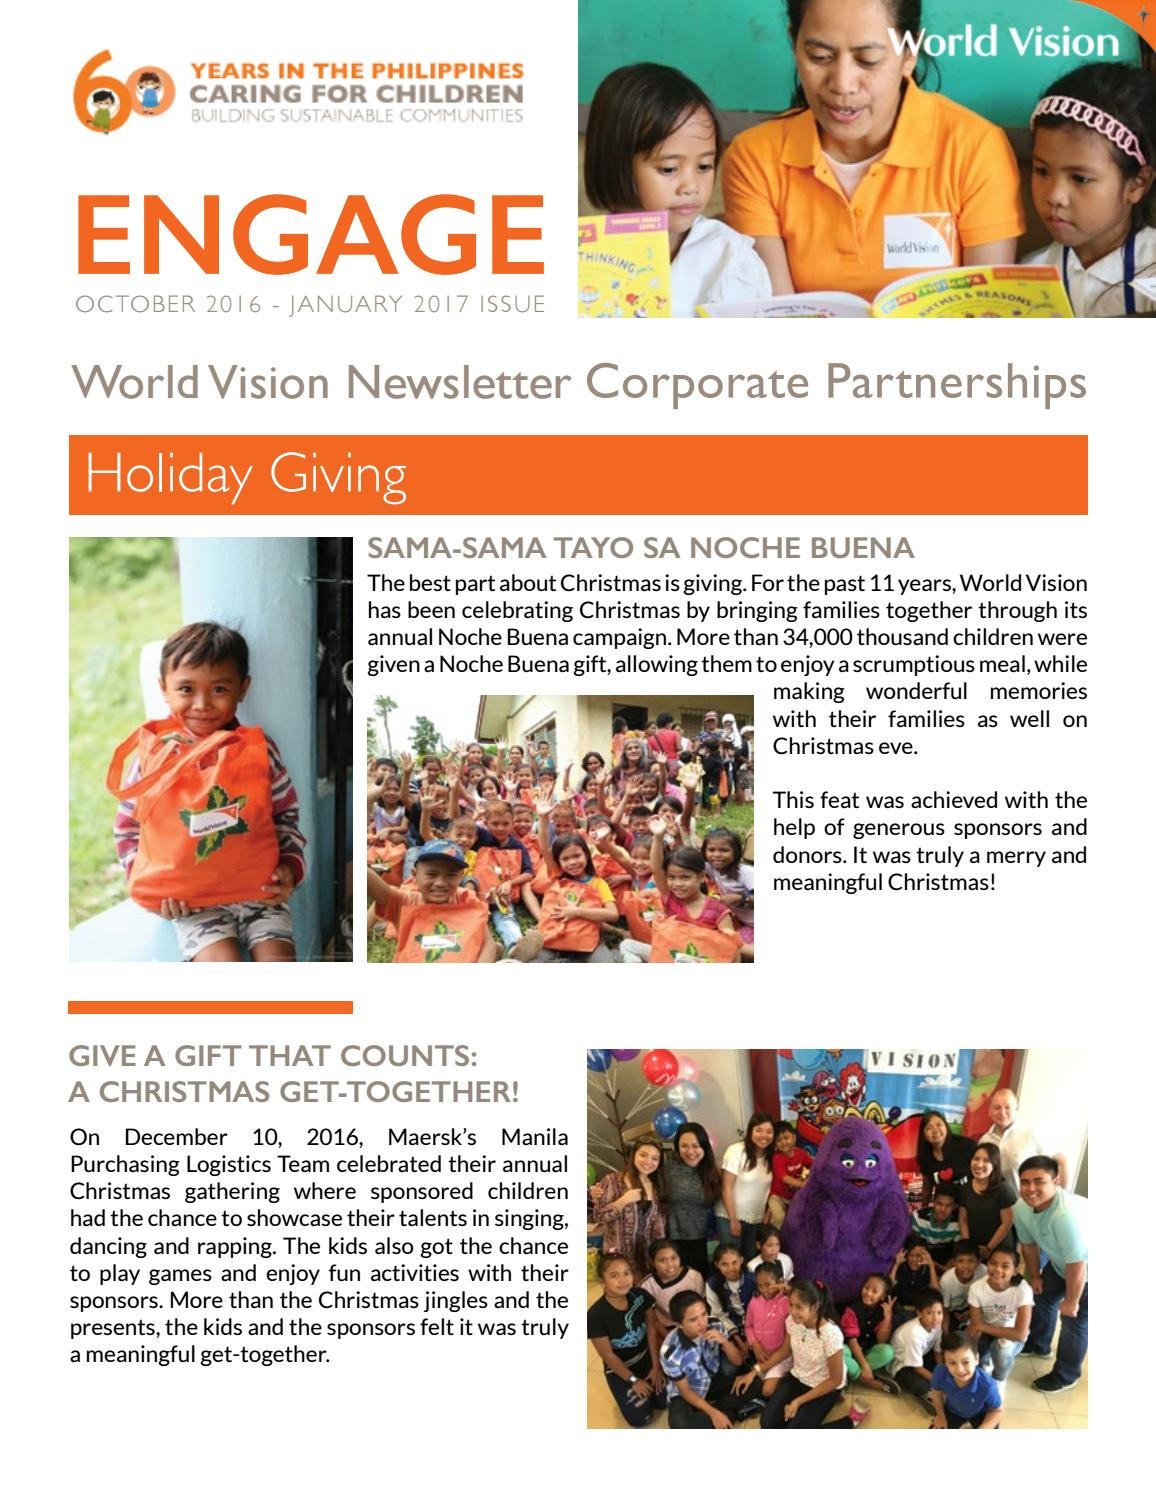 World Vision Engage Corporate Newsletter | October 2016 - January ...